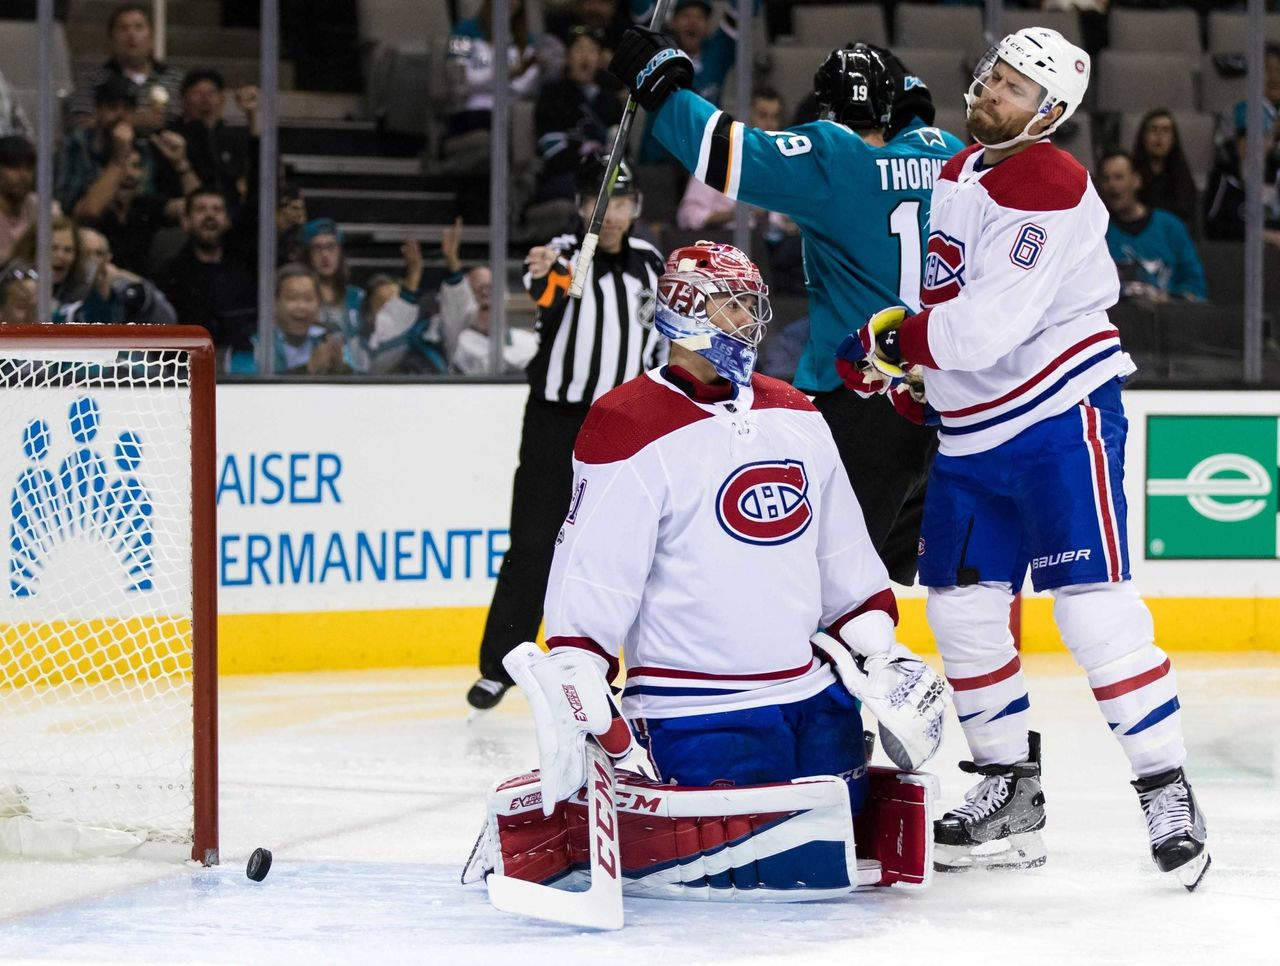 Cropped_2017-10-18t044825z_1580214533_nocid_rtrmadp_3_nhl-montreal-canadiens-at-san-jose-sharks